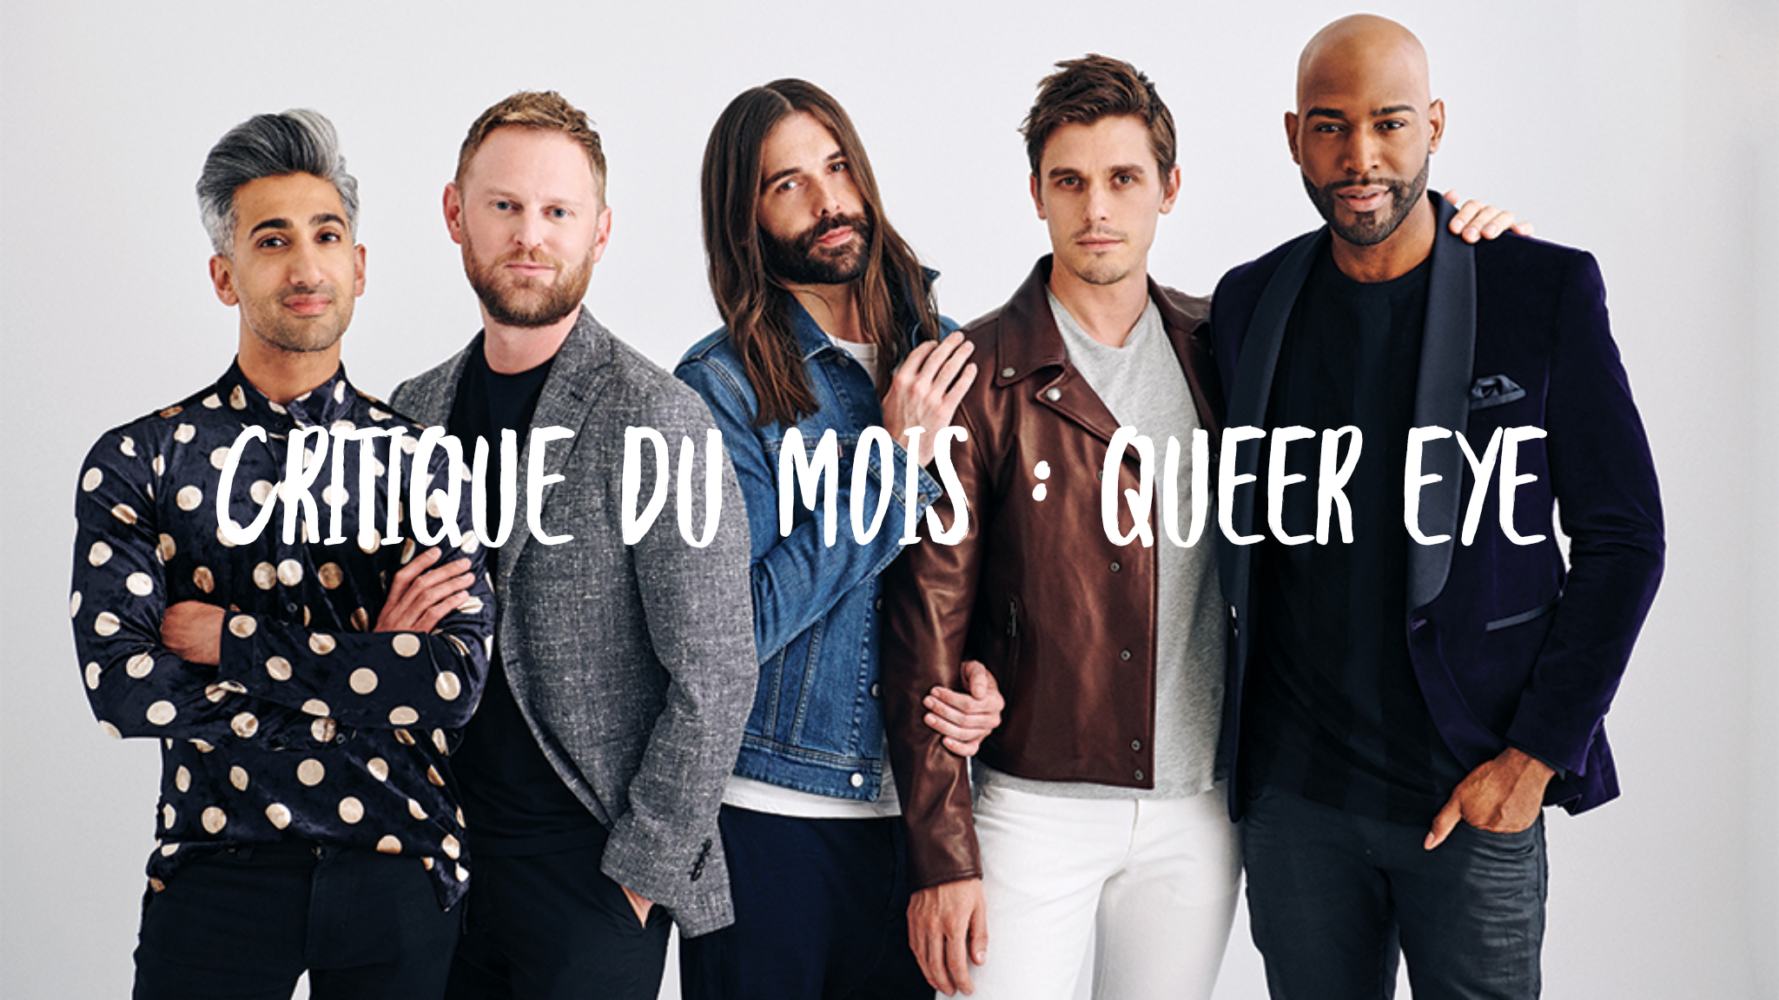 En amour avec le show Queer Eye.